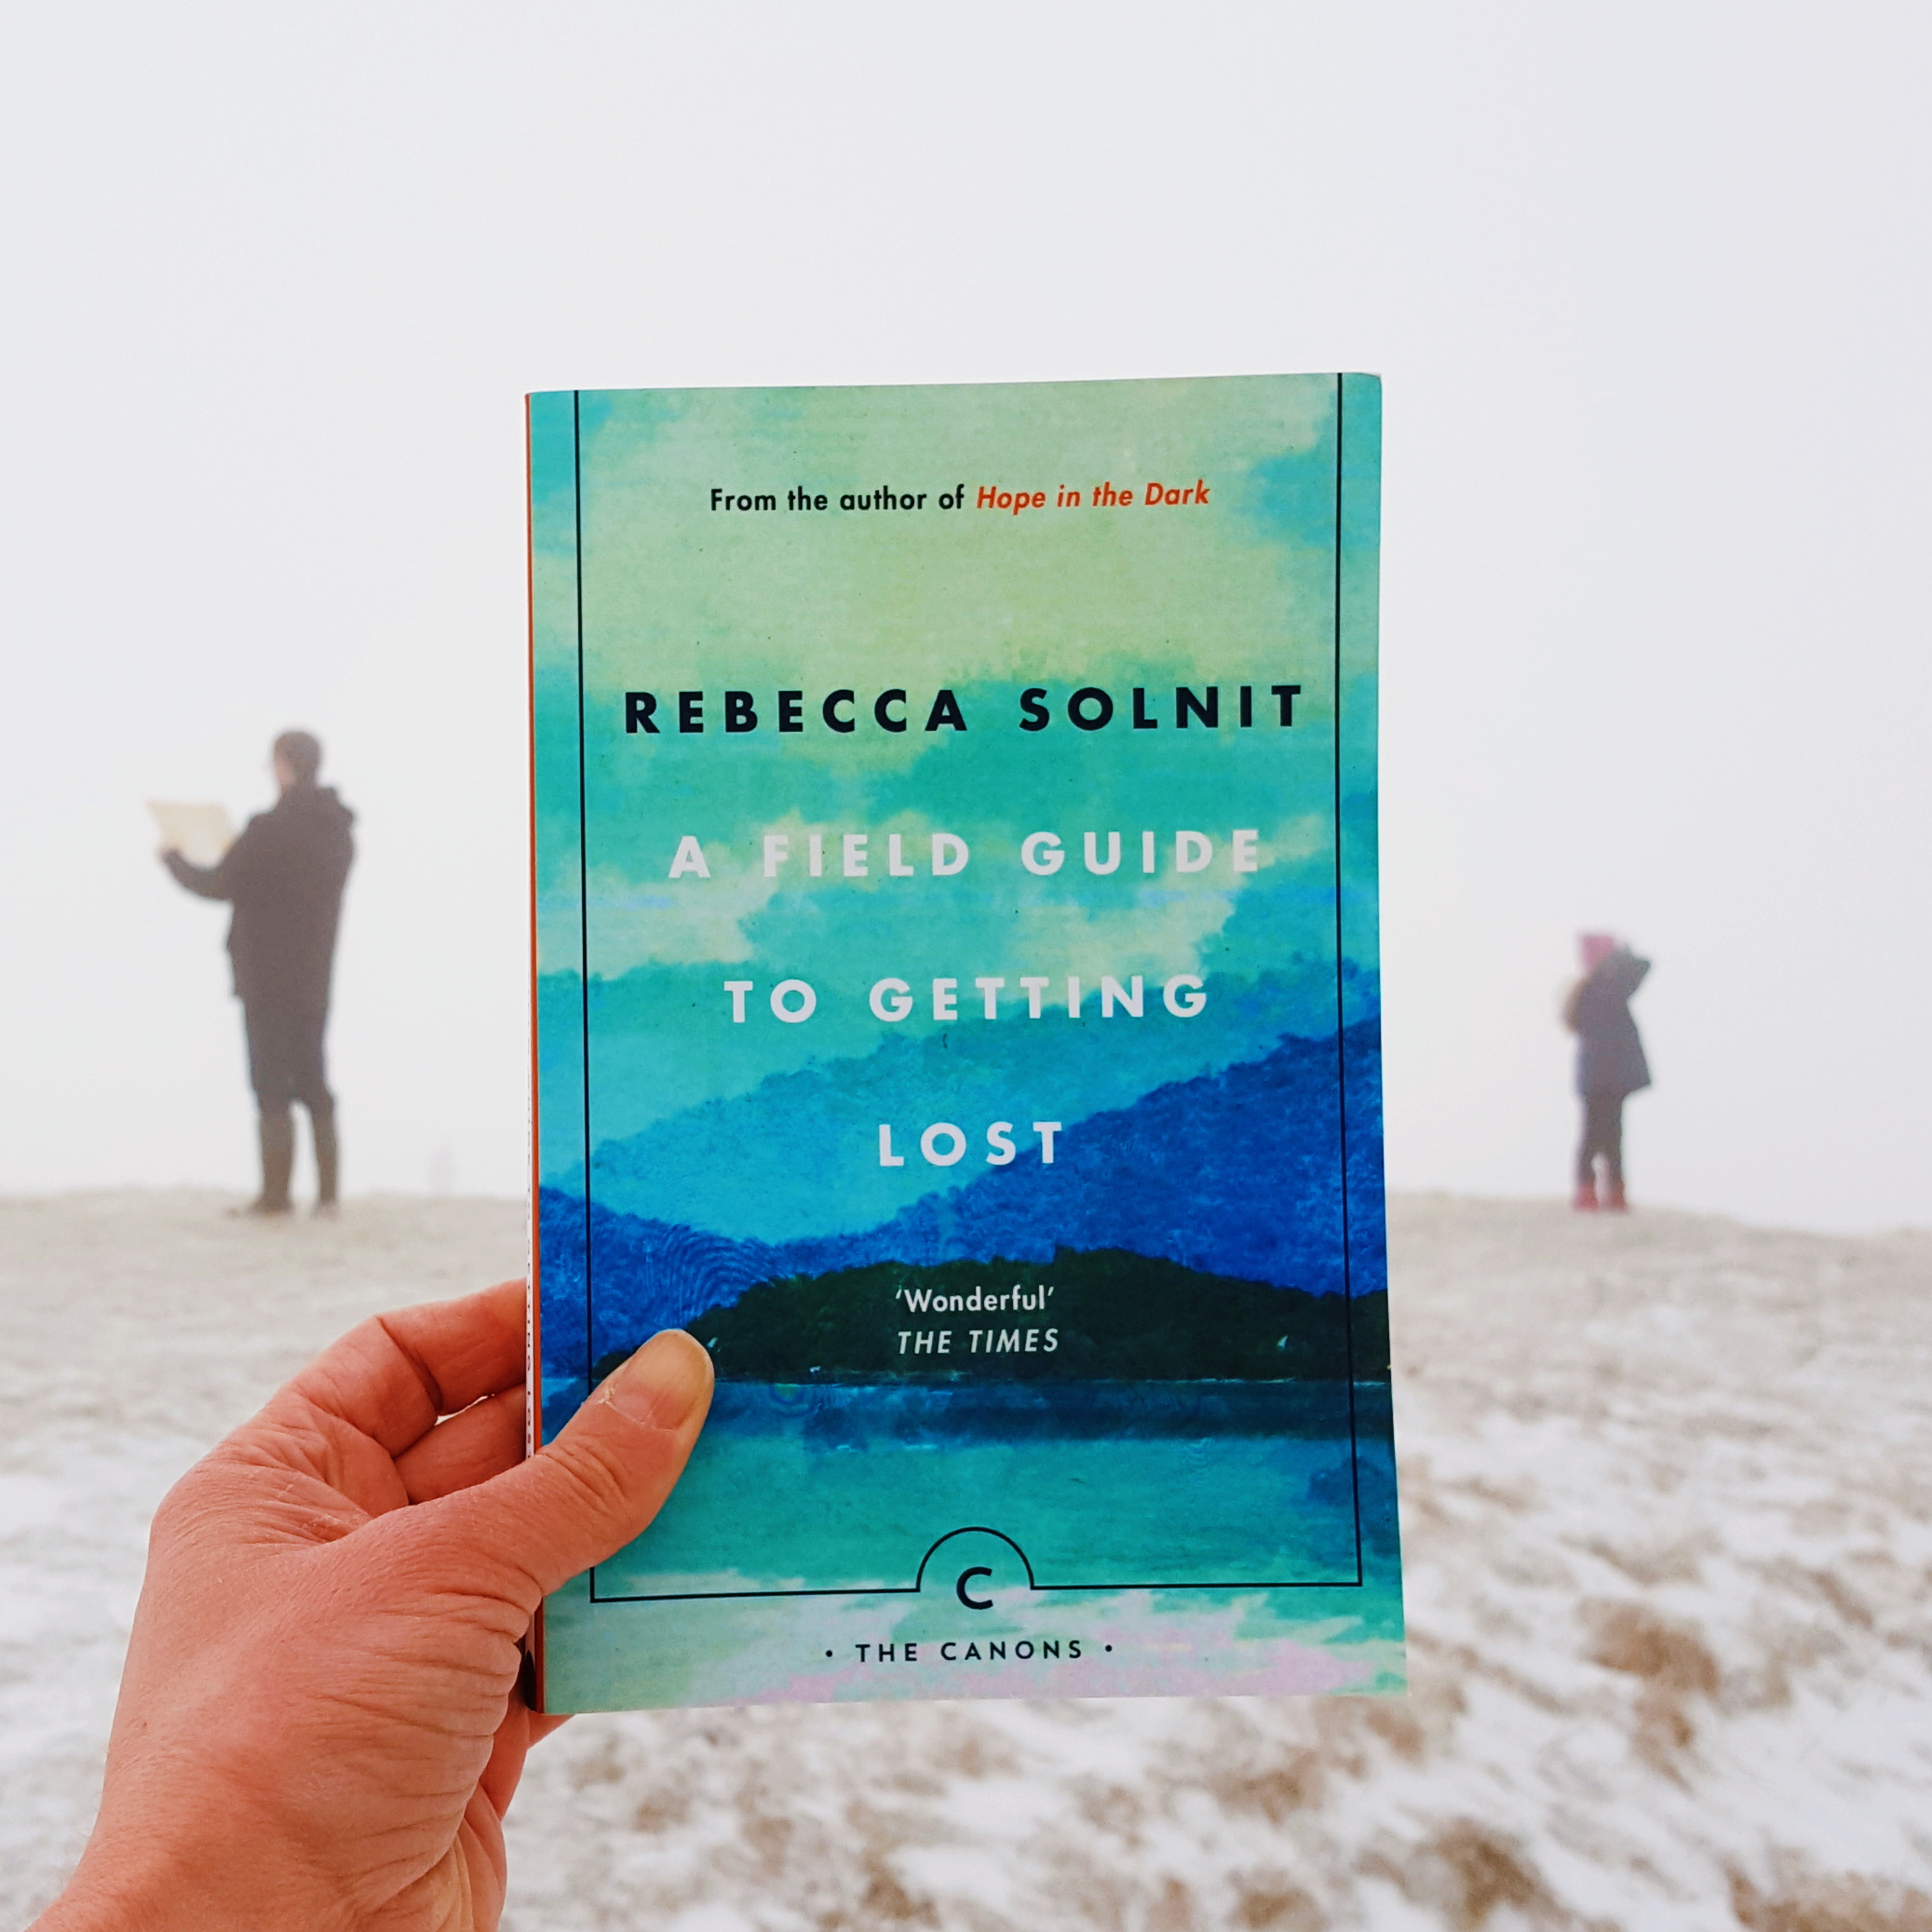 Book Review: A Field Guide to Getting Lost by Rebecca Solnit